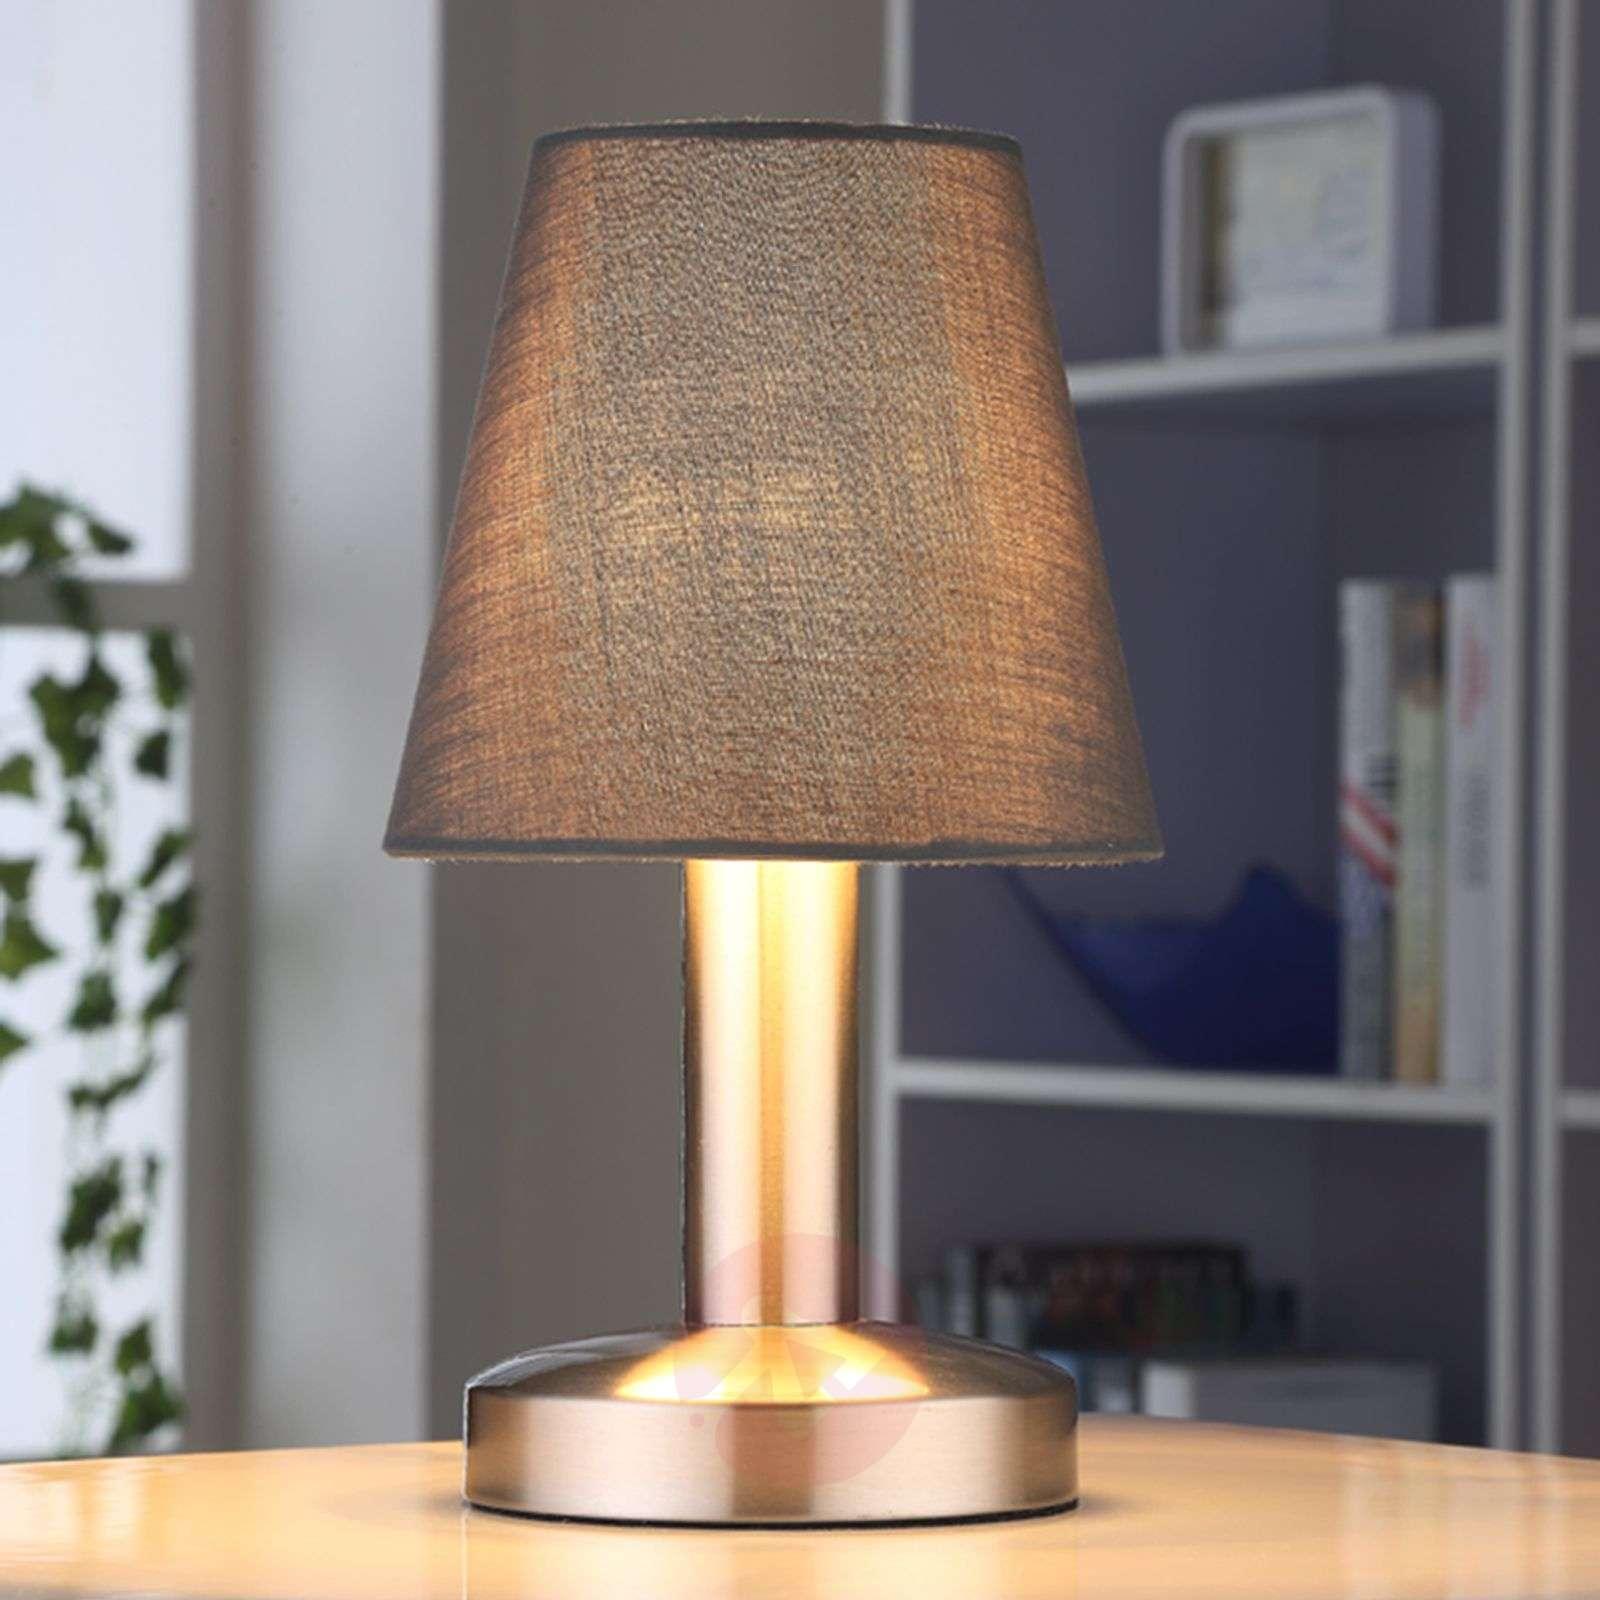 Grey bedside table lamp Hanno w. fabric lampshade-9620811-01